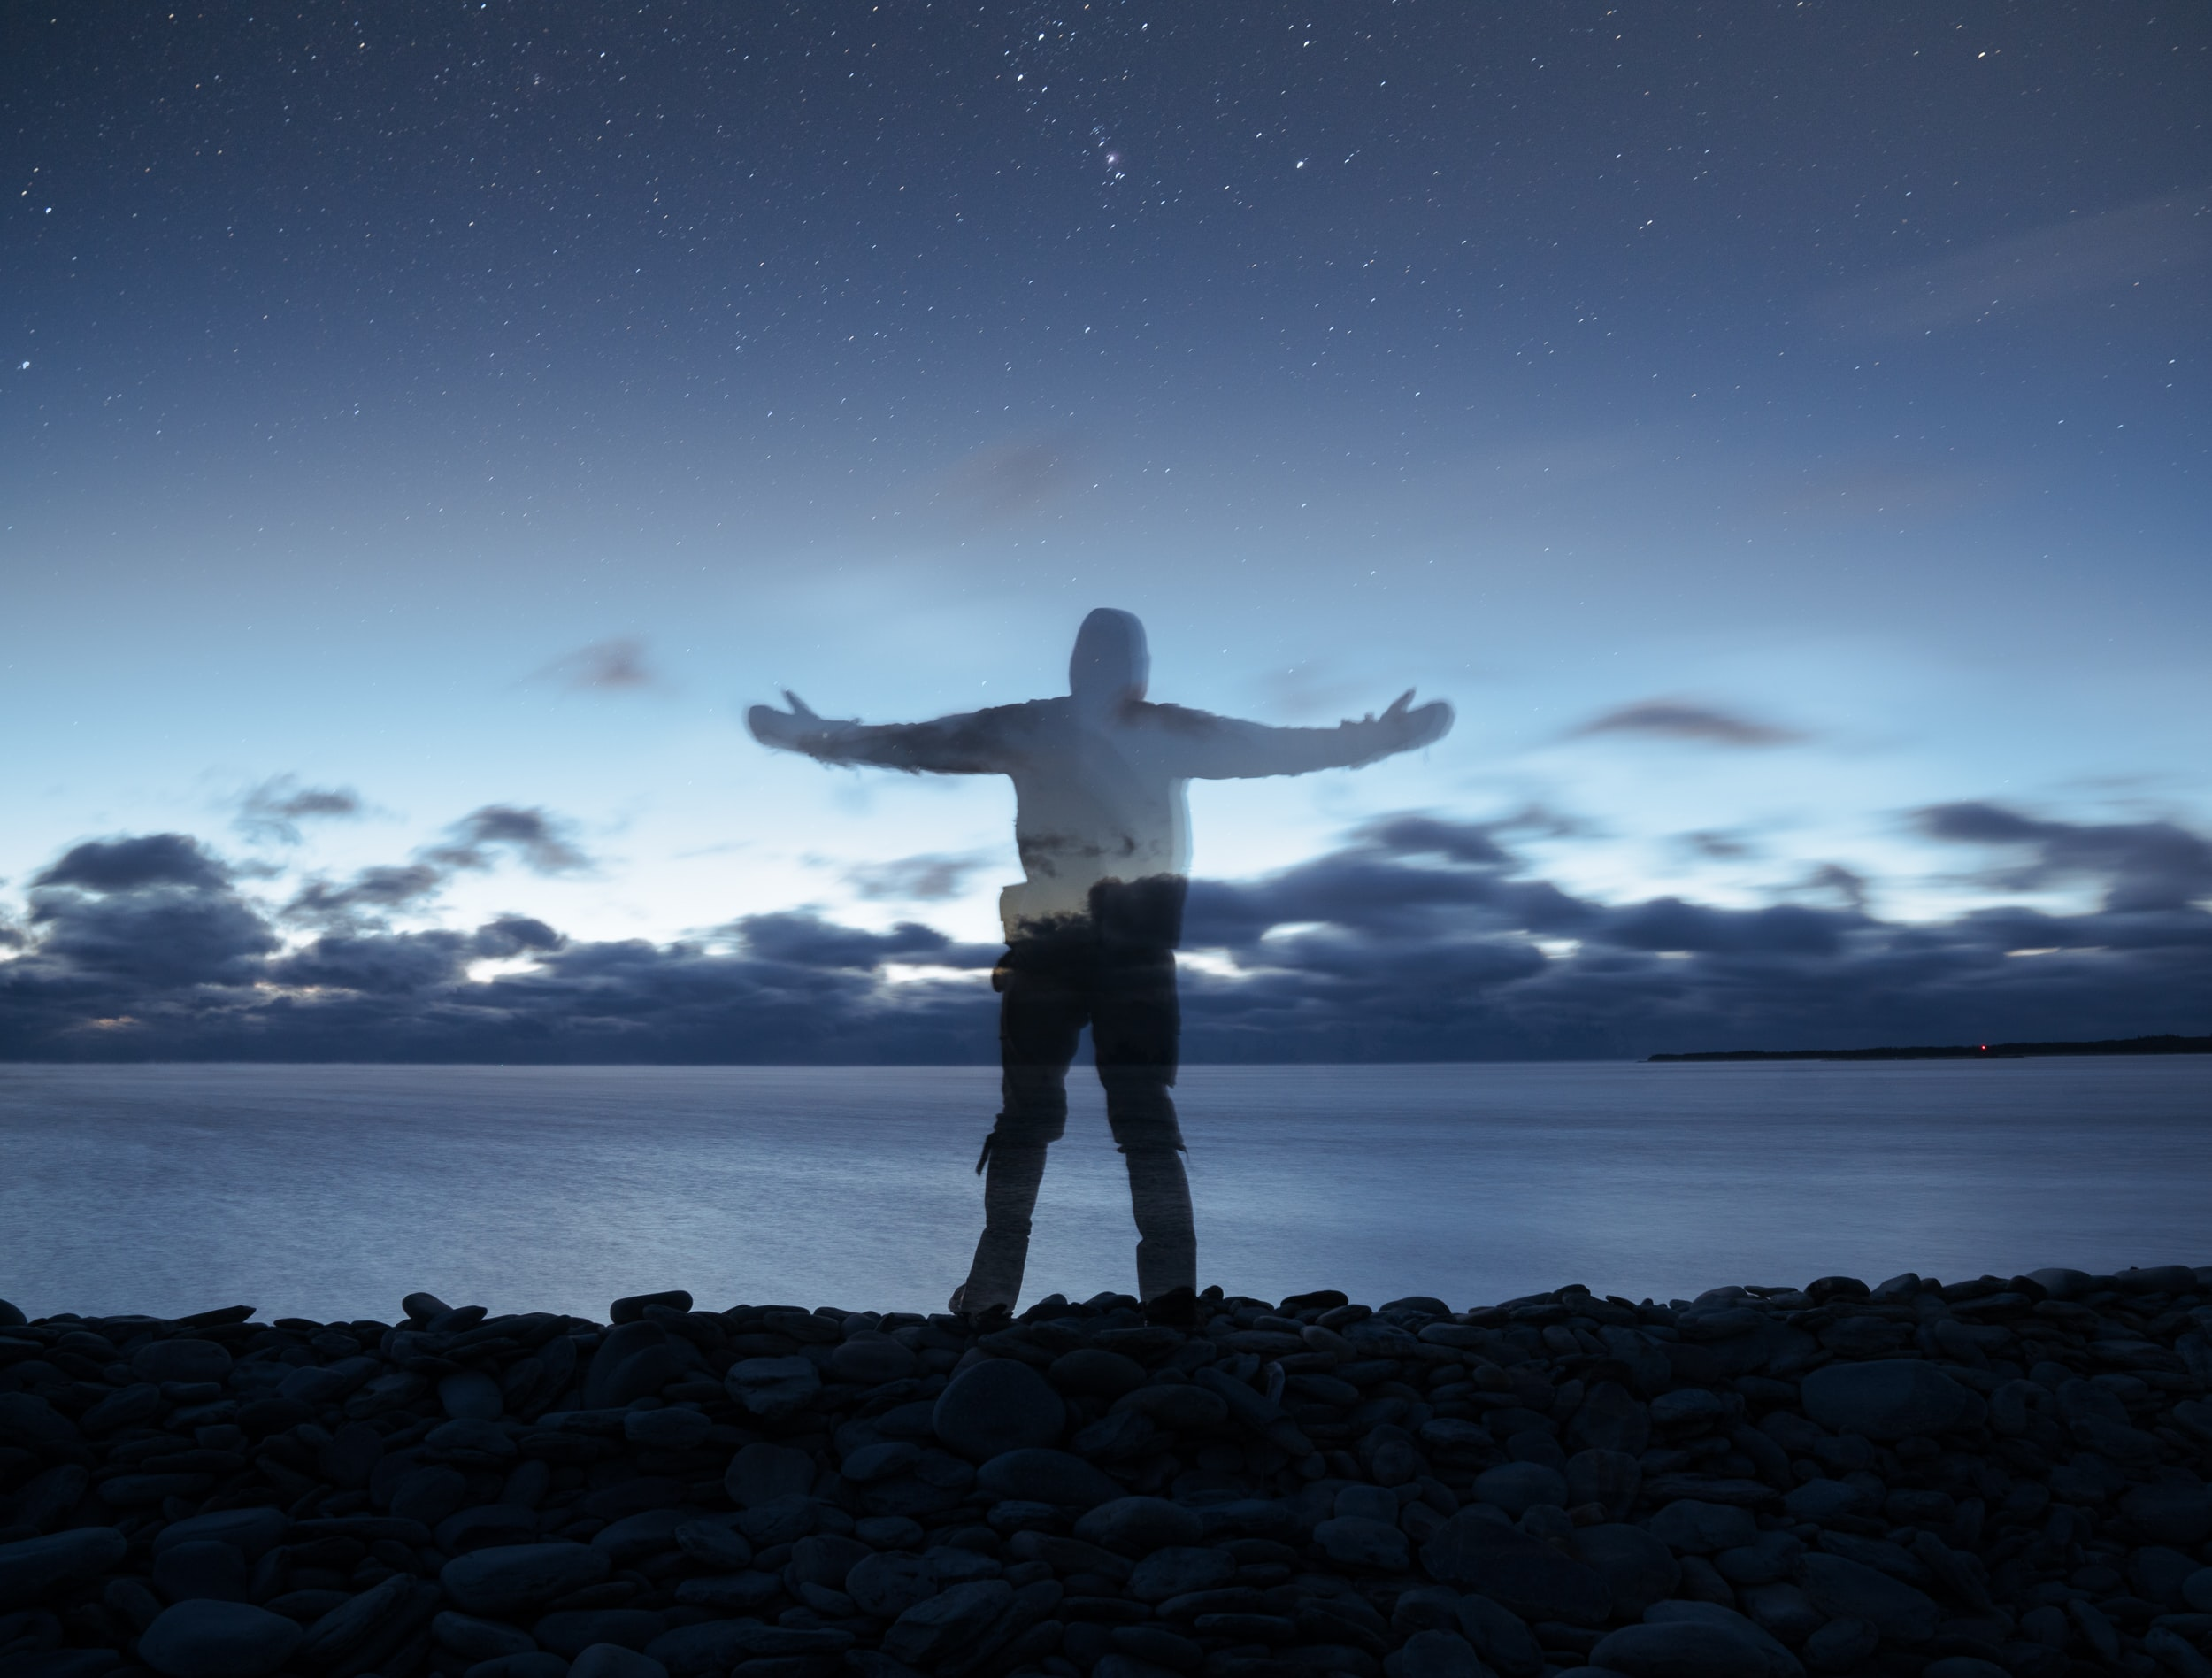 edited photo of person standing on rocks near sea during nighttime